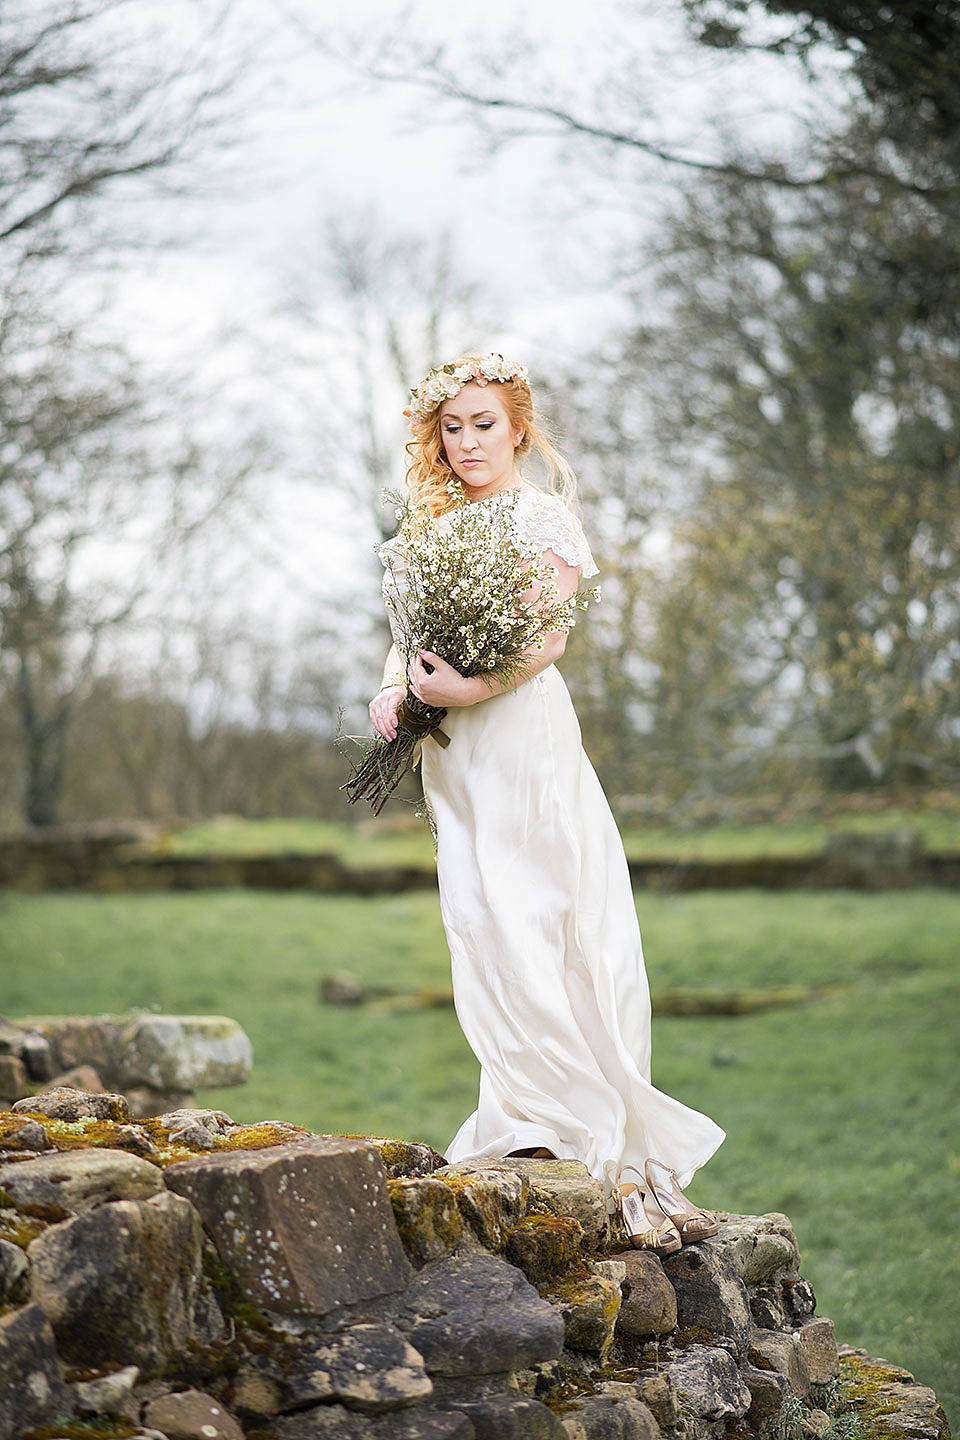 The Shepherds Purse Boutique, Whitby: A Treasure Trove Of Silk Flower Crowns, Gowns And Pretty Things